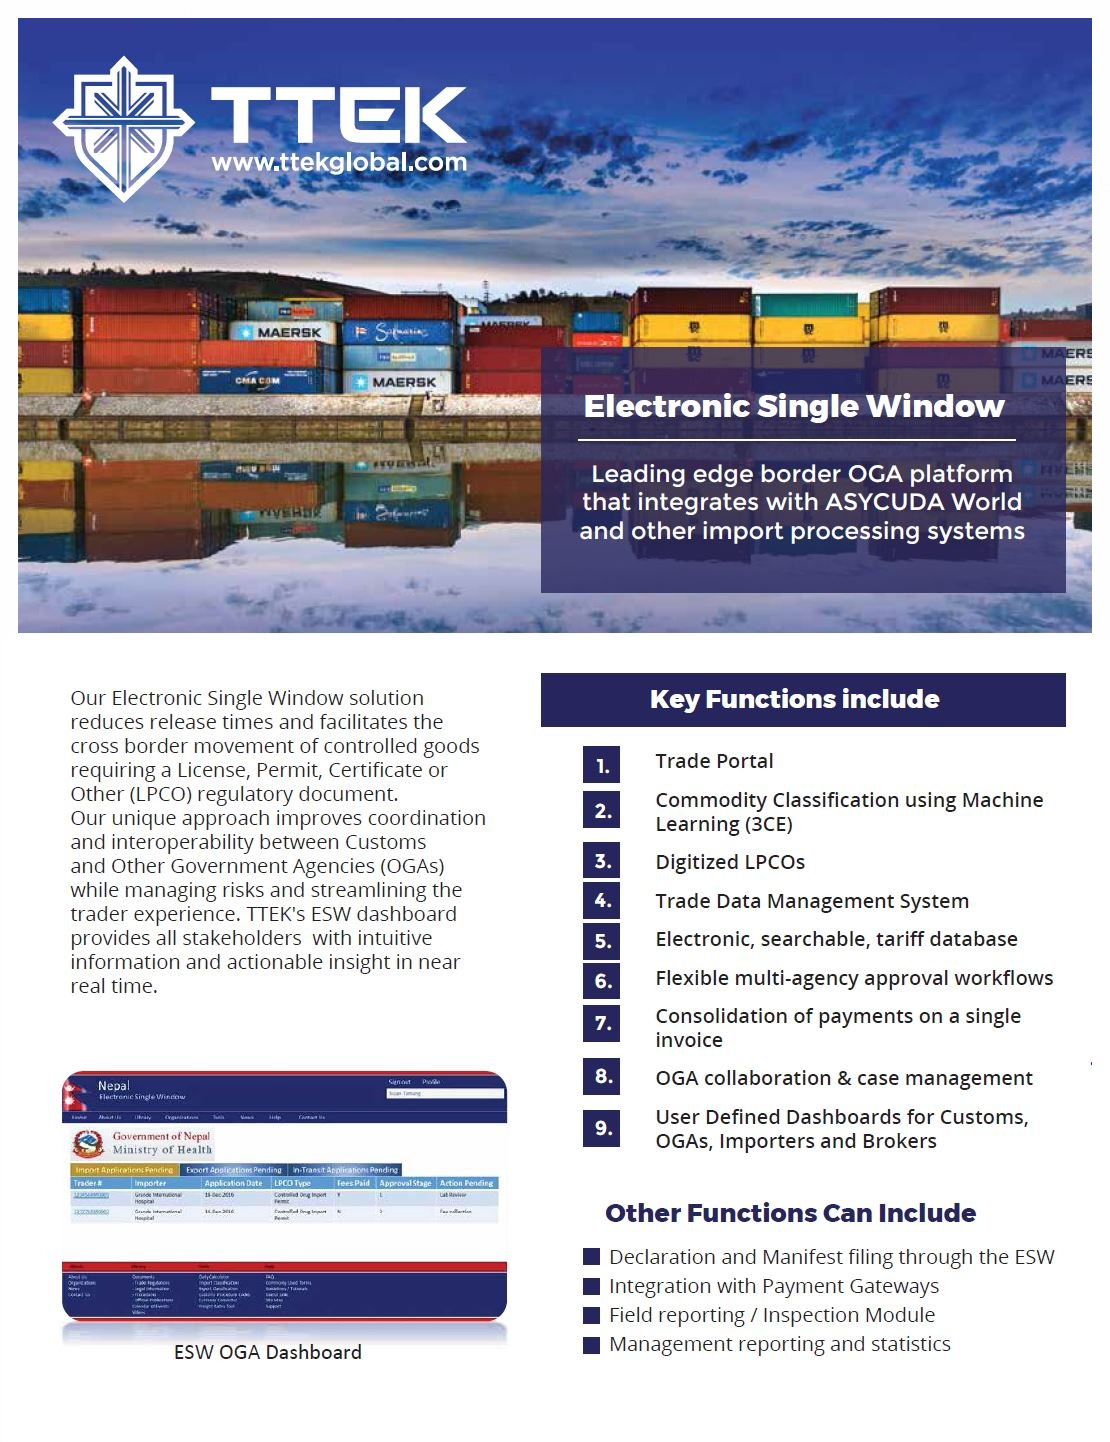 """Our ESW solution can optimize the management of trade facilitation and provide a Single Window for the exchange of trade-related documents between the trading community, customs, and Other Government Agencies (OGAs). - Our ESW provides a public """"one stop"""" user-friendly repository for comprehensive tariff and regulatory trade information, government advisories, and training materials.Download our ESW Brochure in PDF Format."""